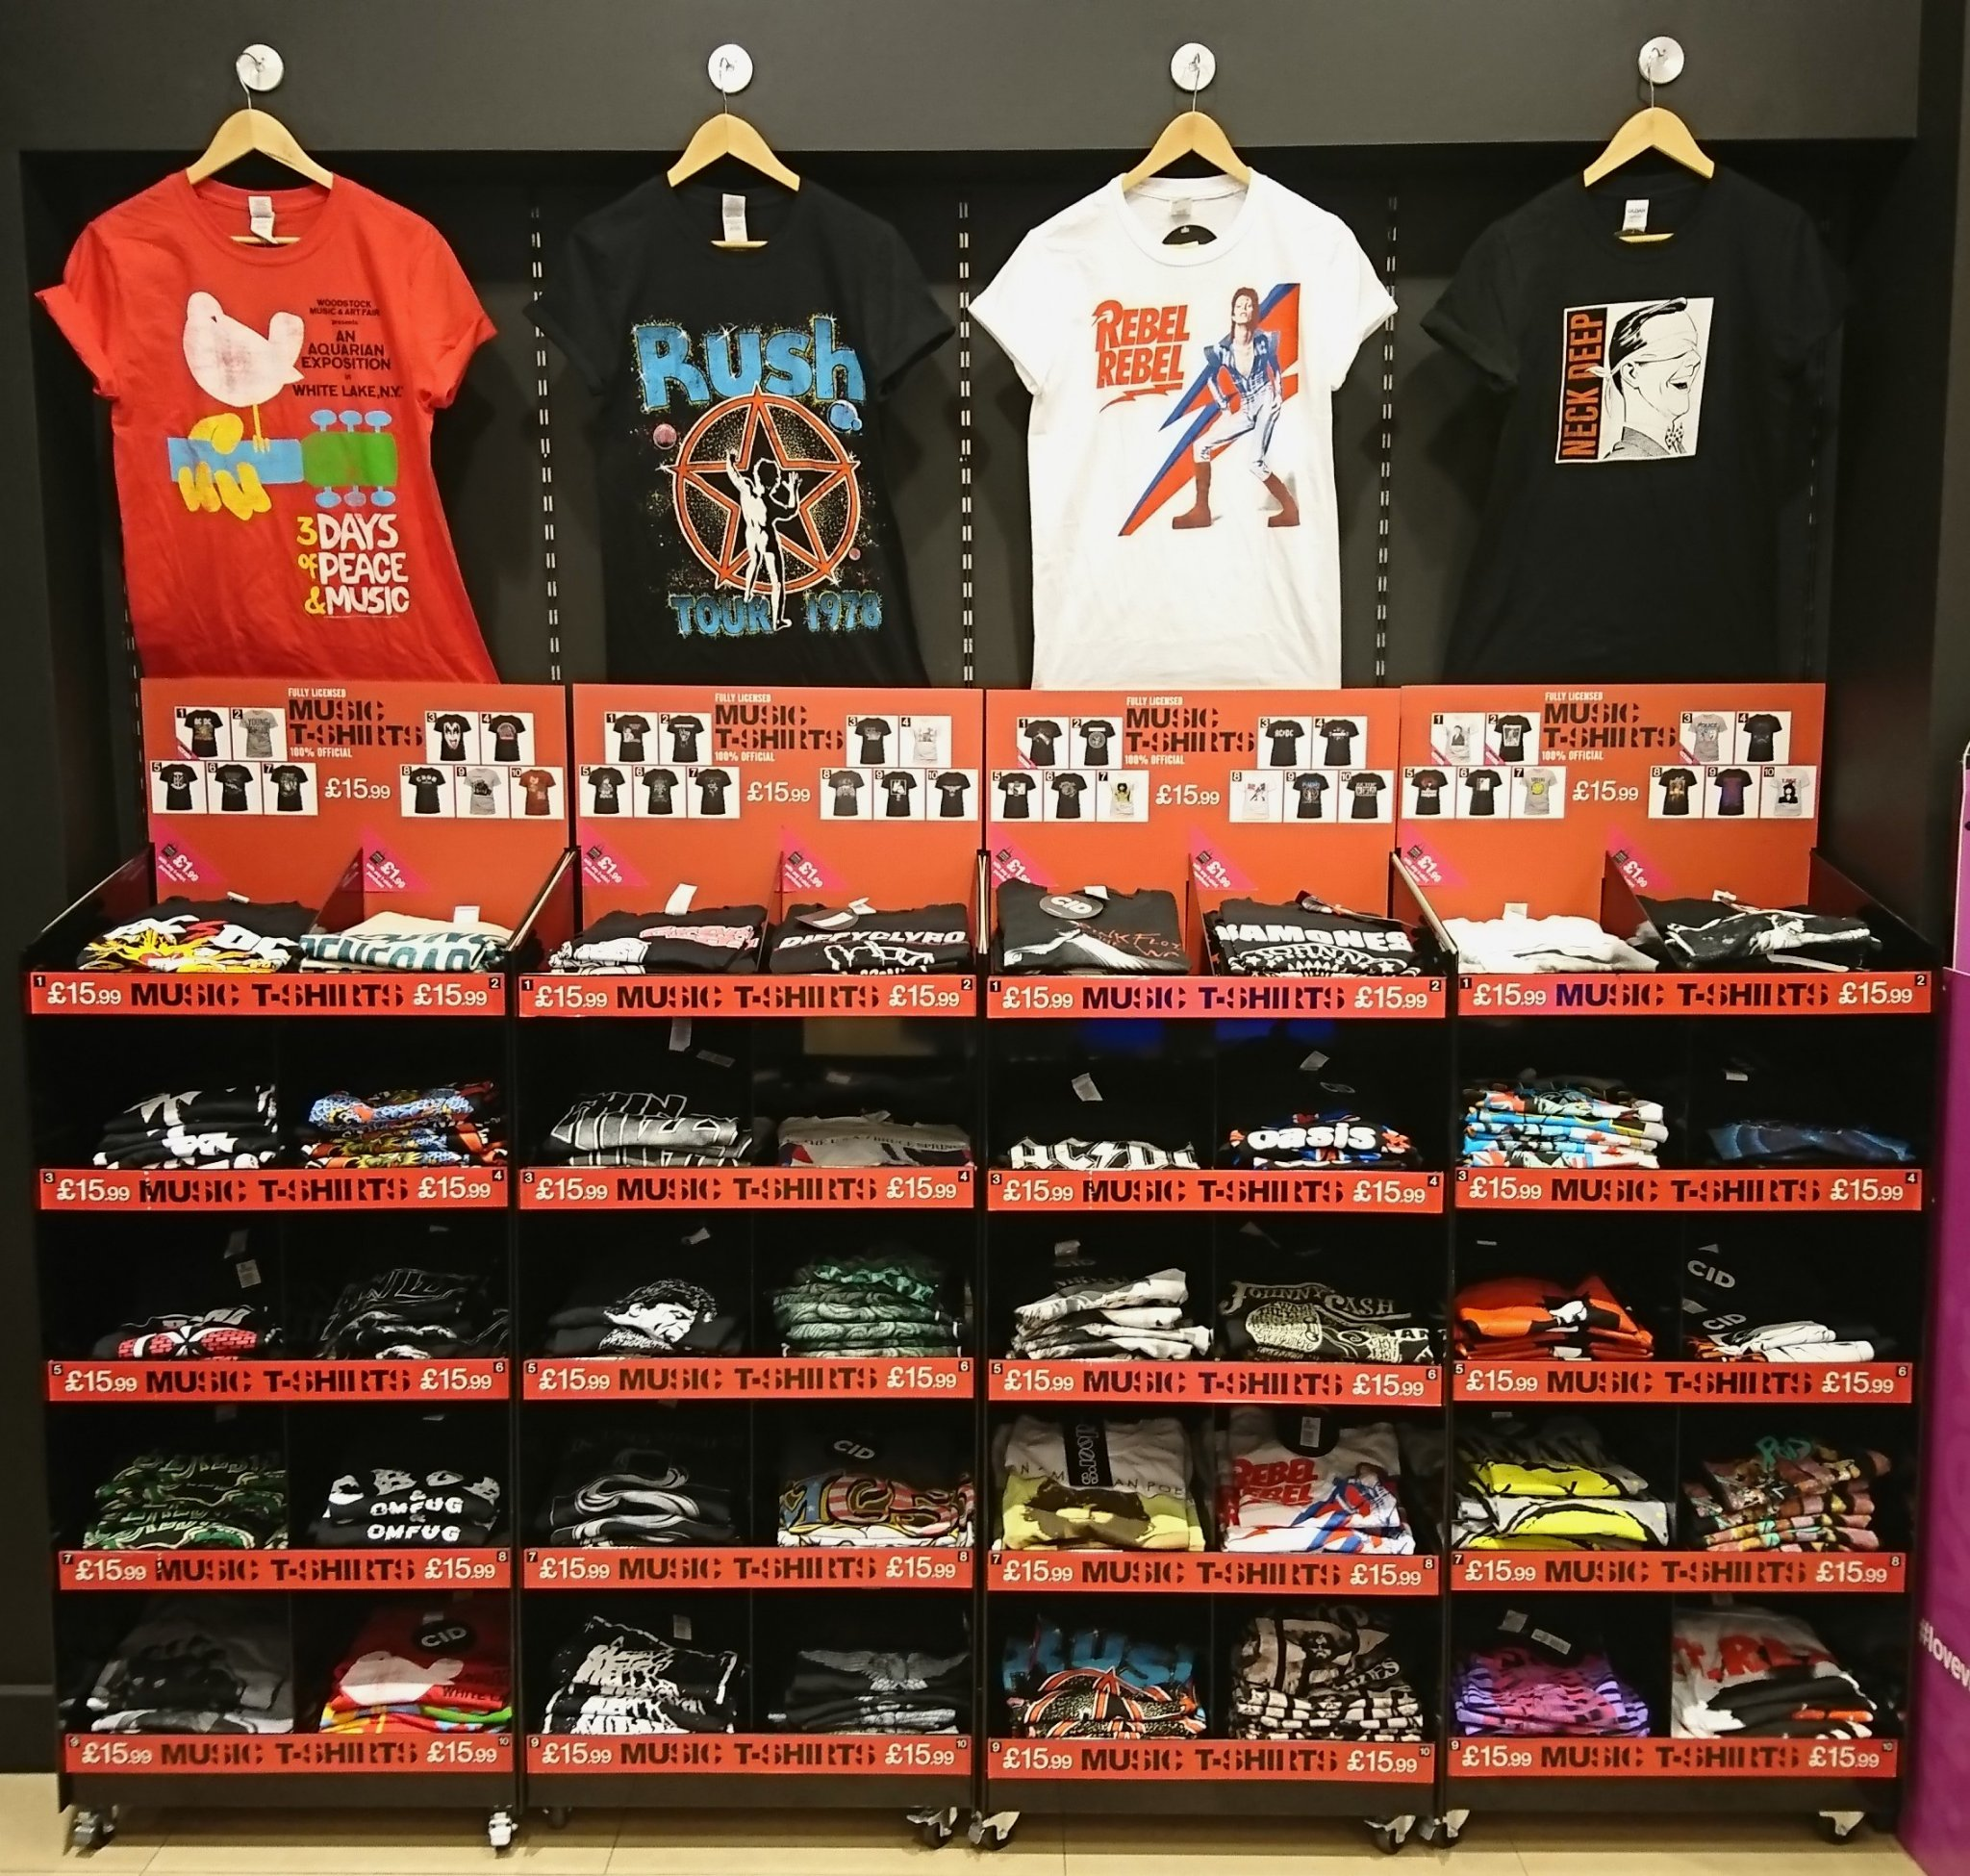 2018 shoes pretty cool new concept T Shirts At Hmv Uk | Coolmine Community School